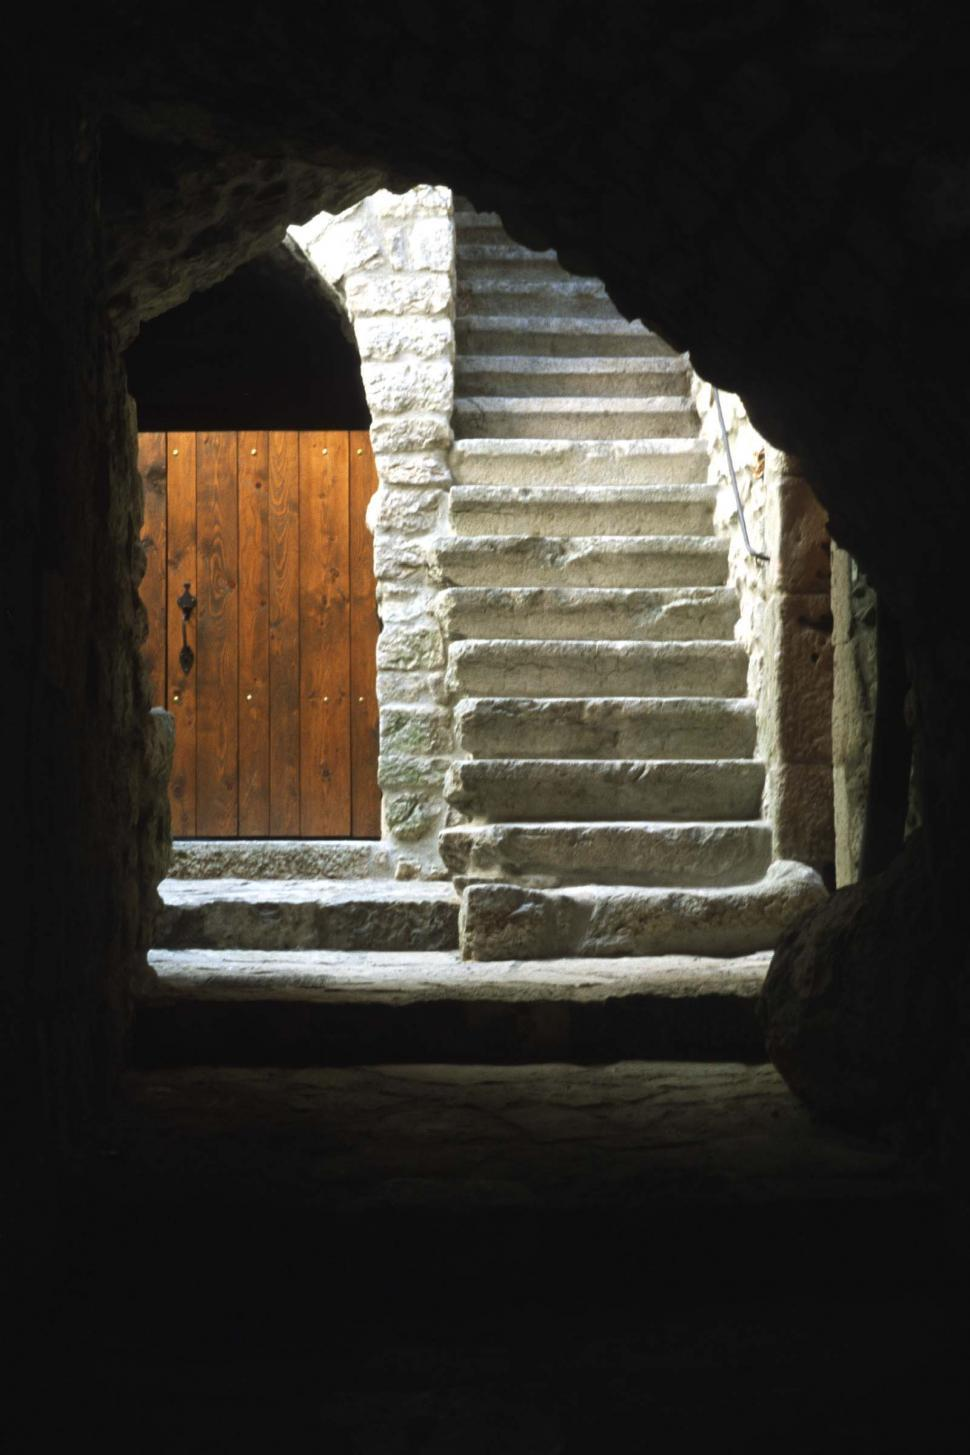 Download Free Stock HD Photo of Tunnel, steps and wooden door Online